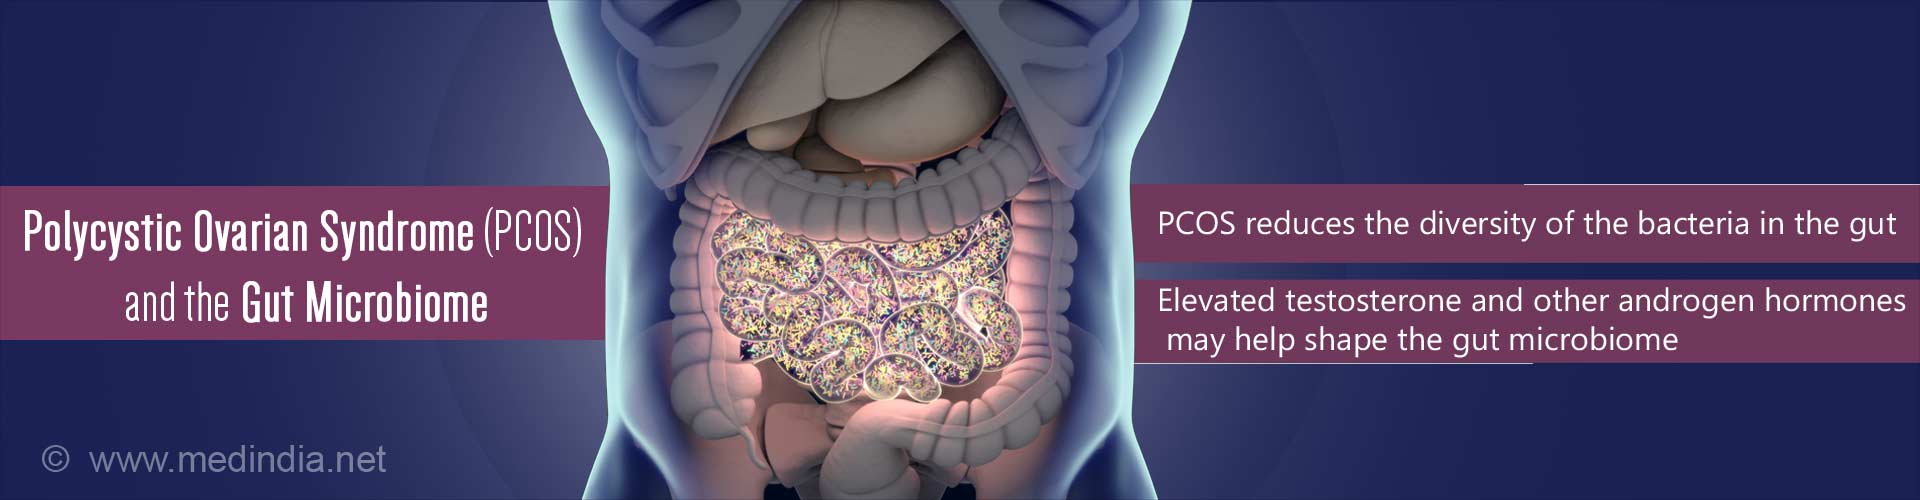 Gut Bacteria Diversity Affected by Polycystic Ovarian Syndrome